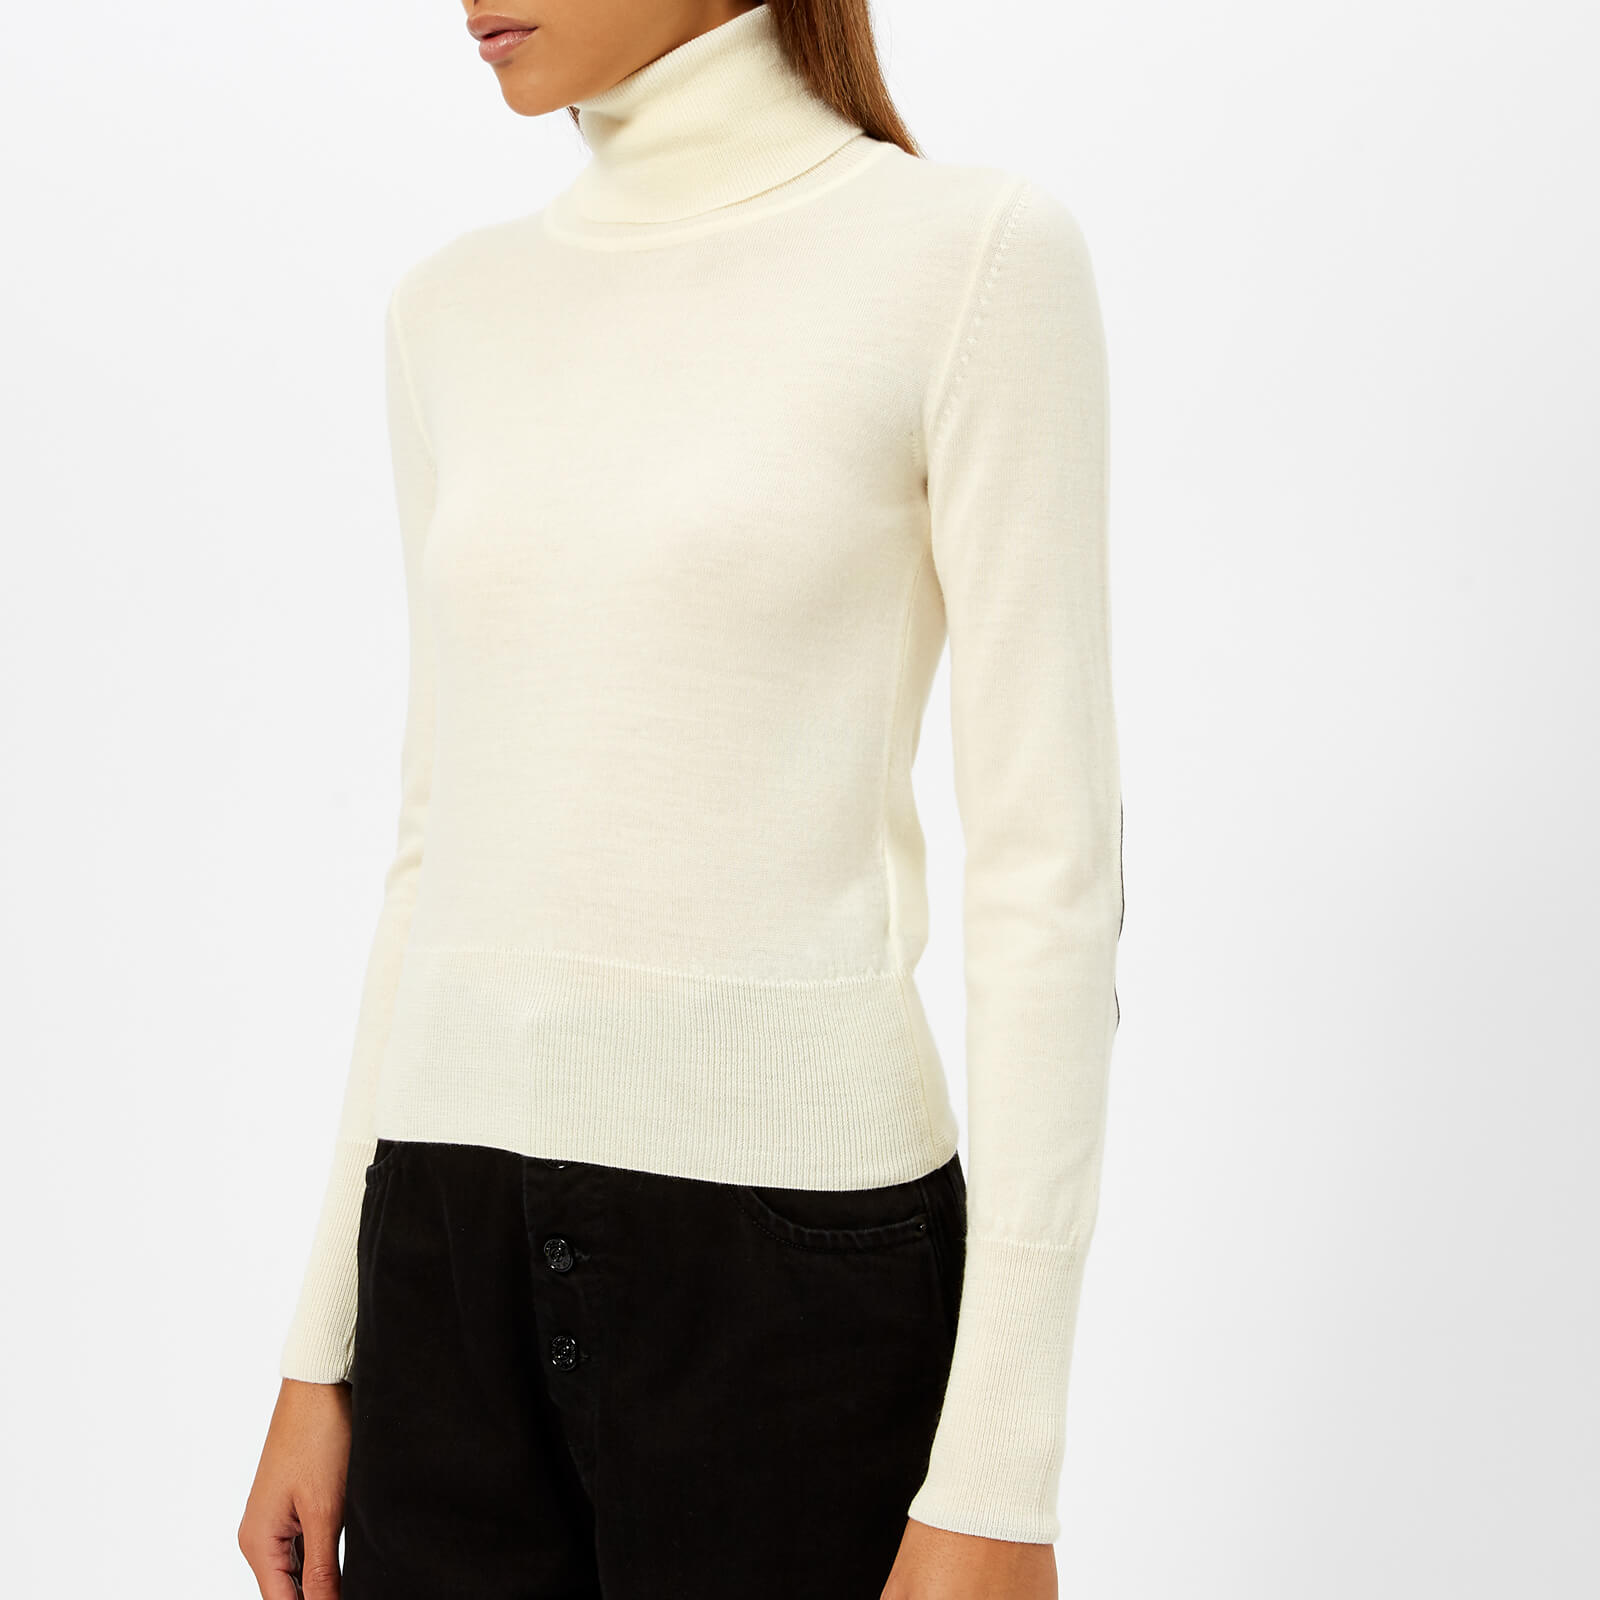 9108d19f95a634 MM6 Maison Margiela Women's High Neck Wool Jumper with Elbow Patches - Off  White - Free UK Delivery over £50